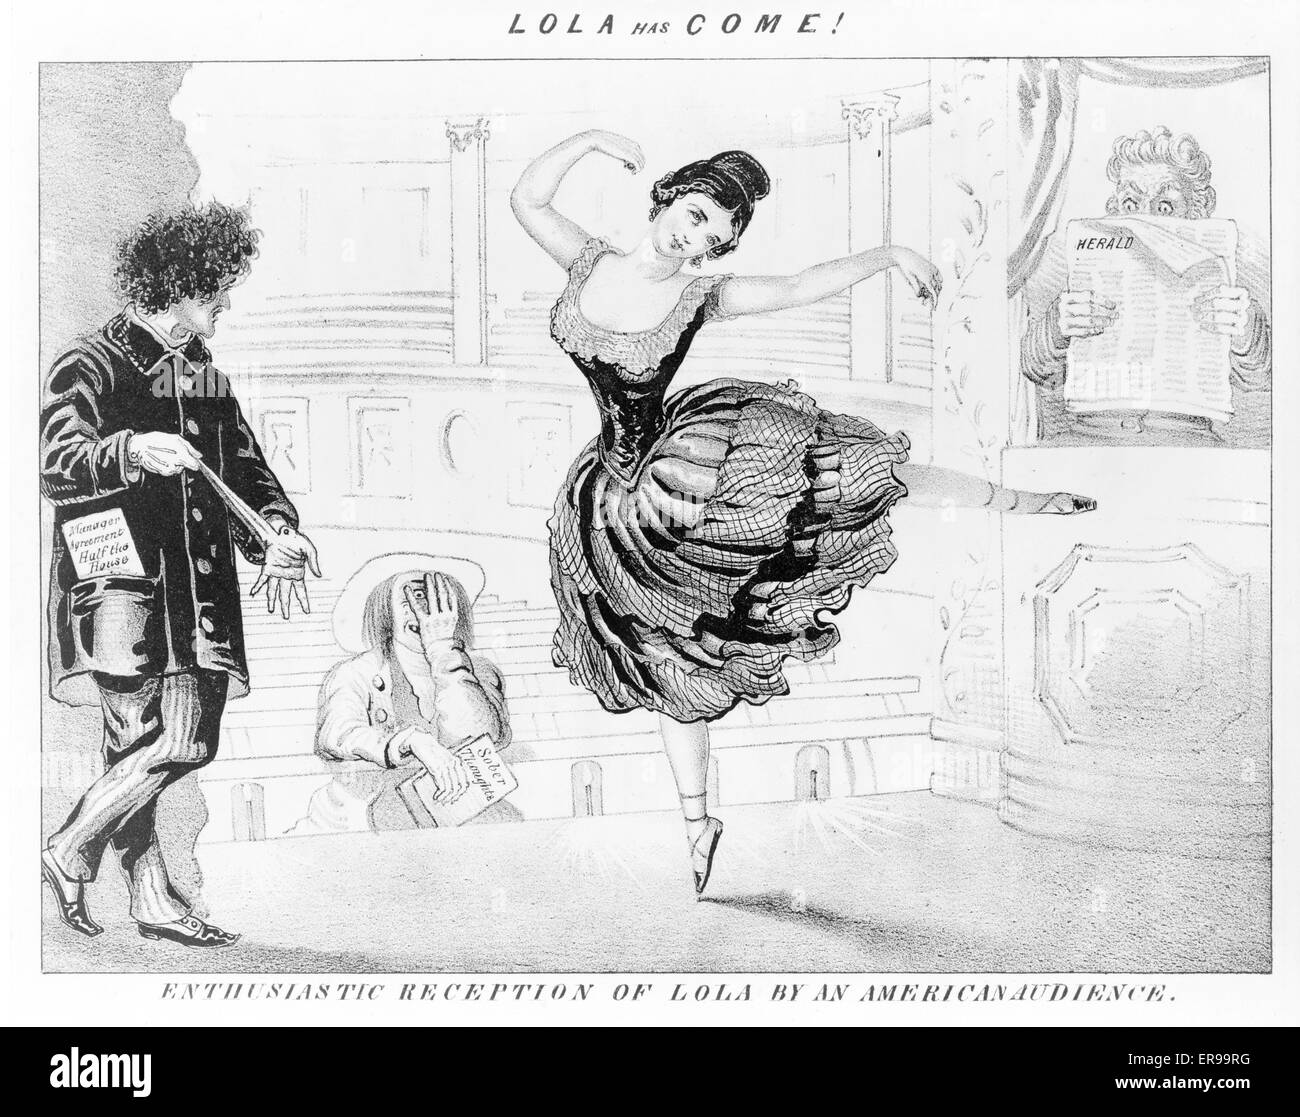 Lola has come! Enthusiastic reception of Lola by American audience. Caricature of theater scene, showing Lola Montez - Stock Image